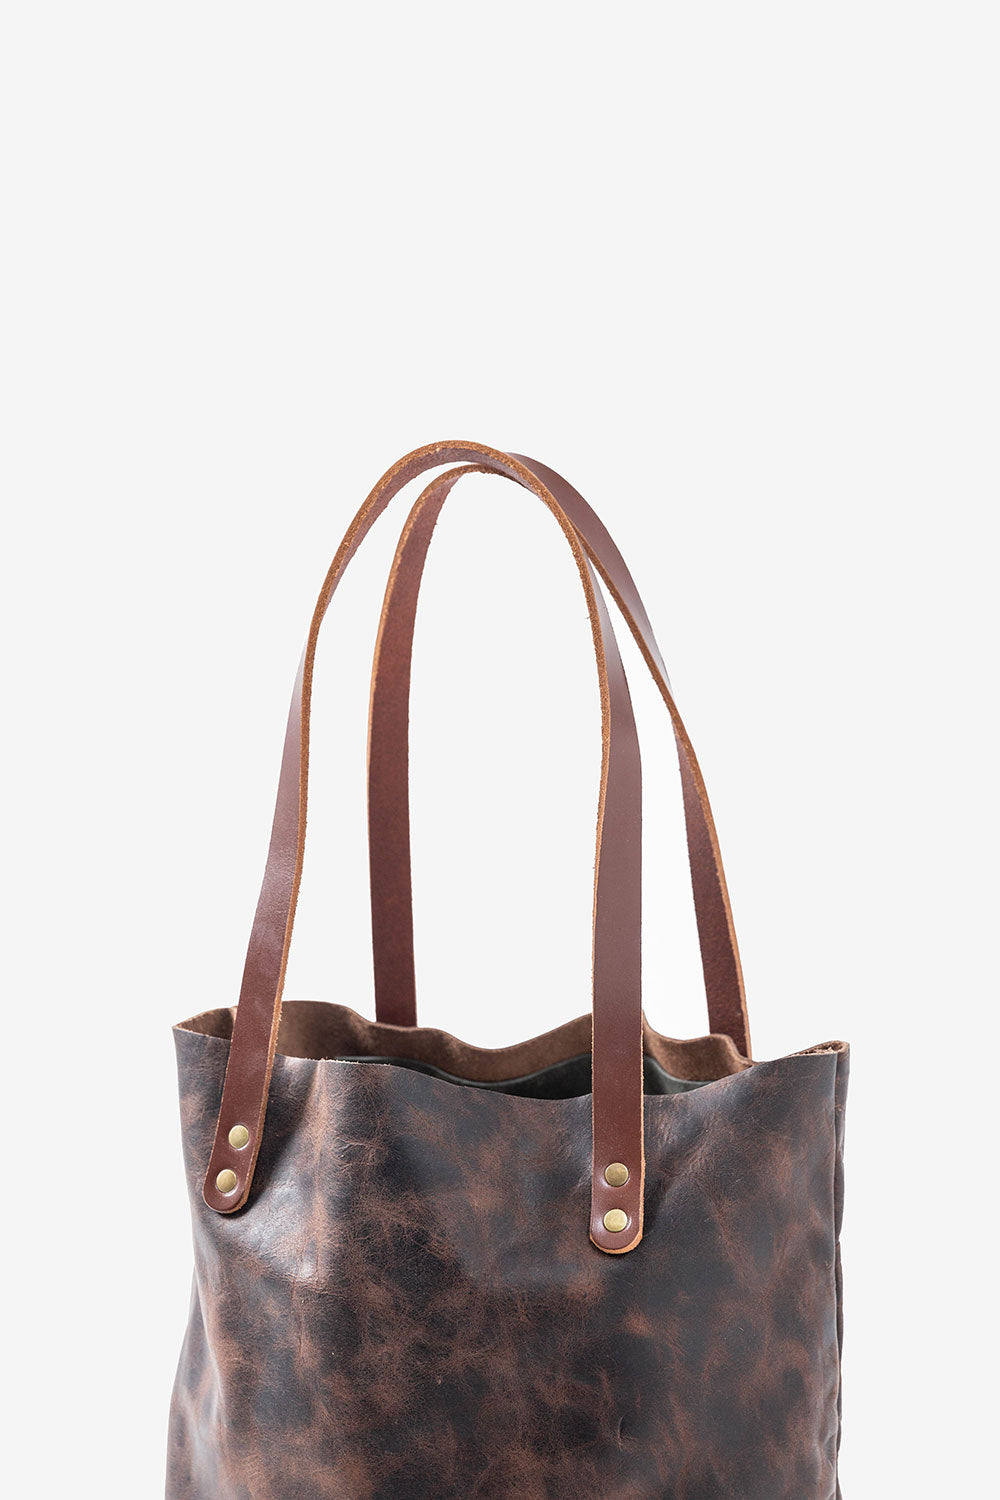 Alabama Chanin Hawks and Doves Handmade Leather Bag with Rivets and Straps